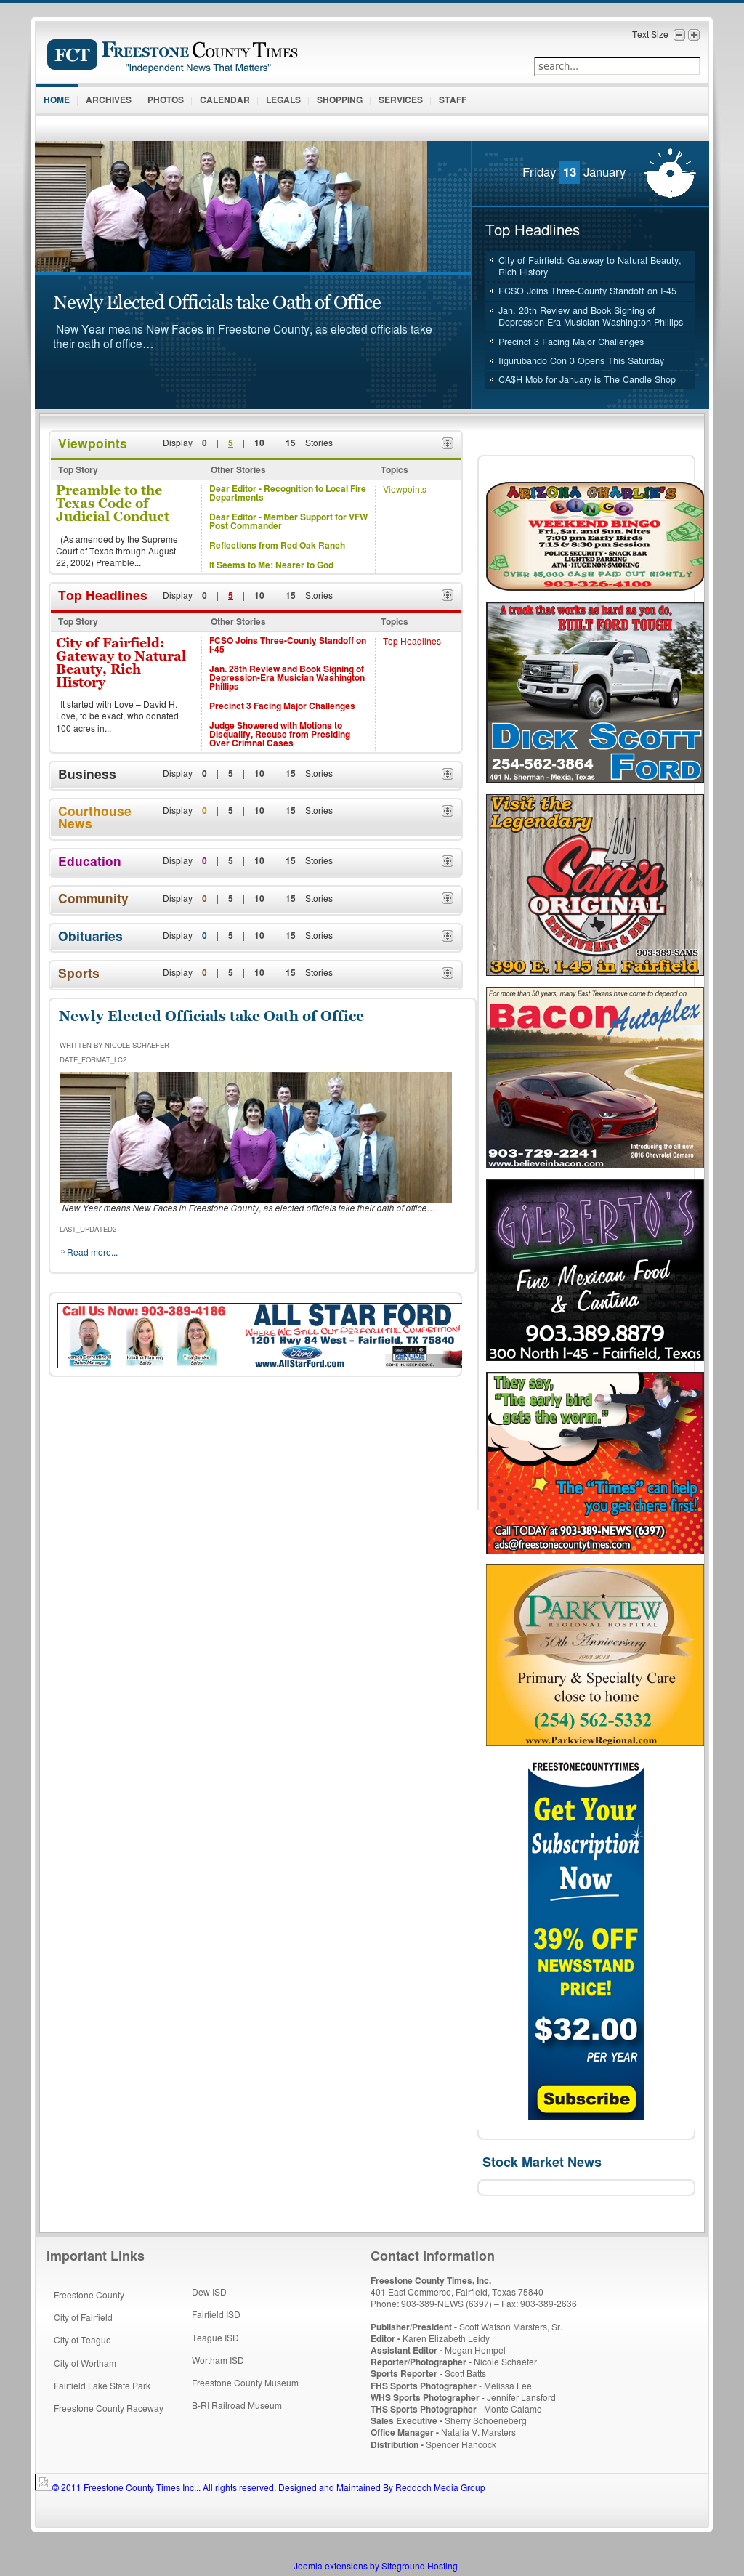 freestone county dating Official site of the freestone county tax assessor - collector.